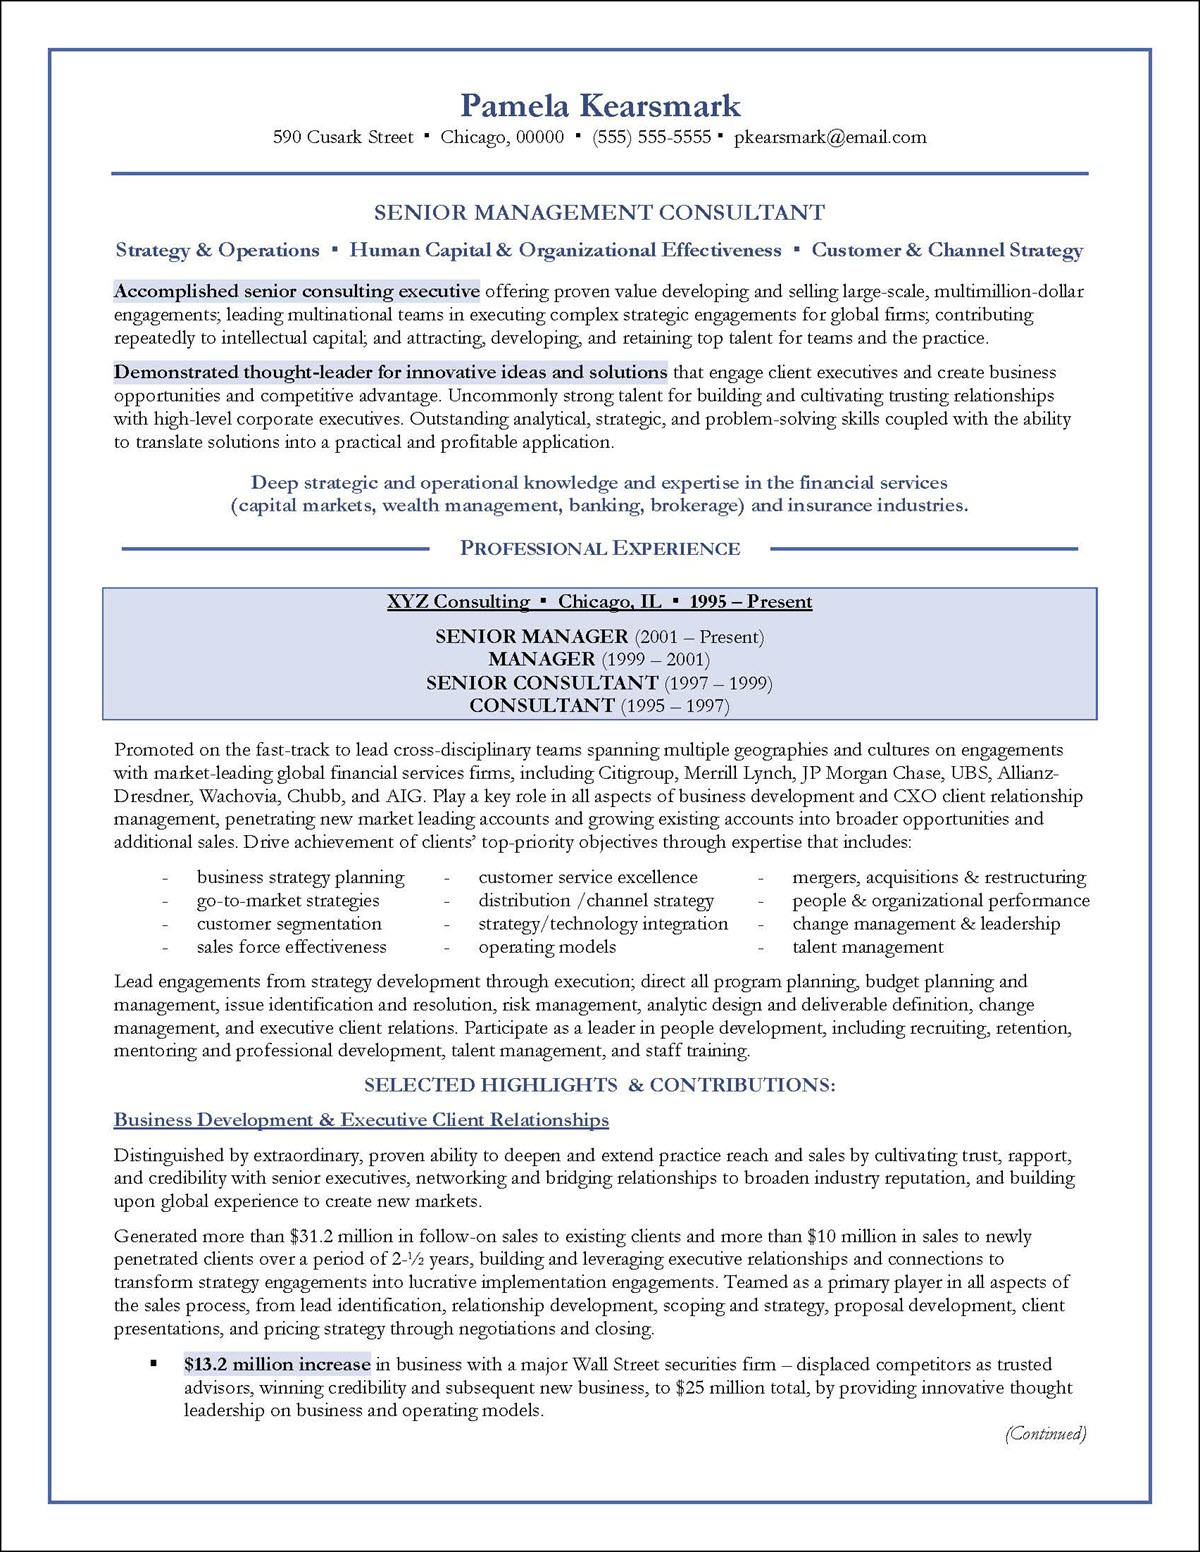 Management Consulting Resume Example Page 1  Senior Executive Resume Examples